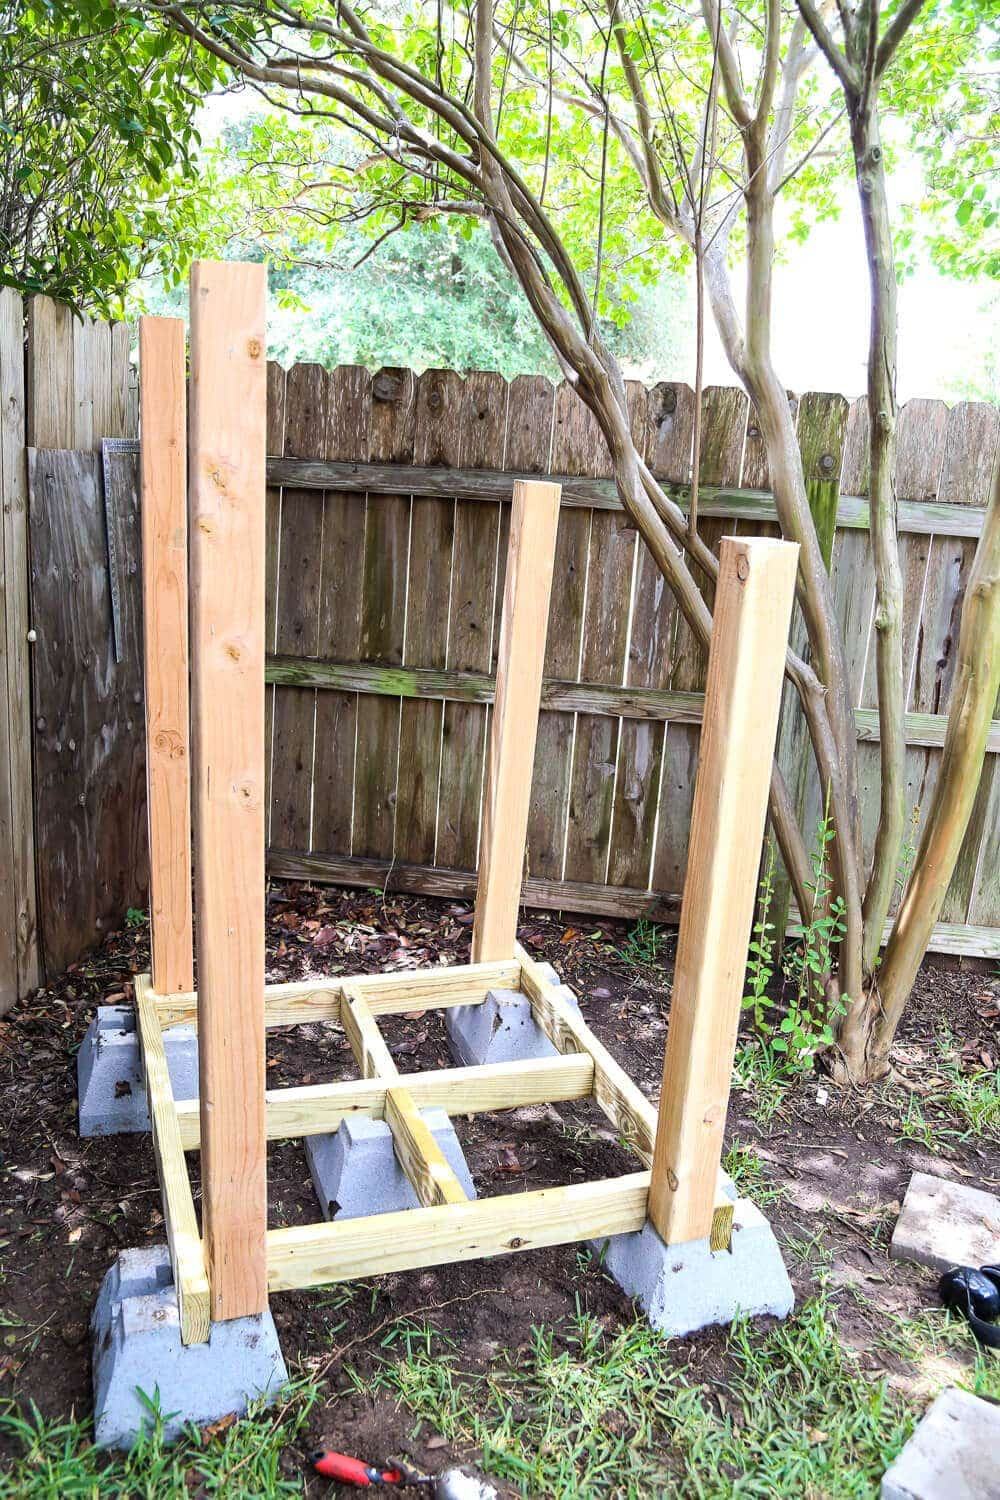 26.SIMPHOME.COM diy playhouse how to build a backyard playhouse for your toddler